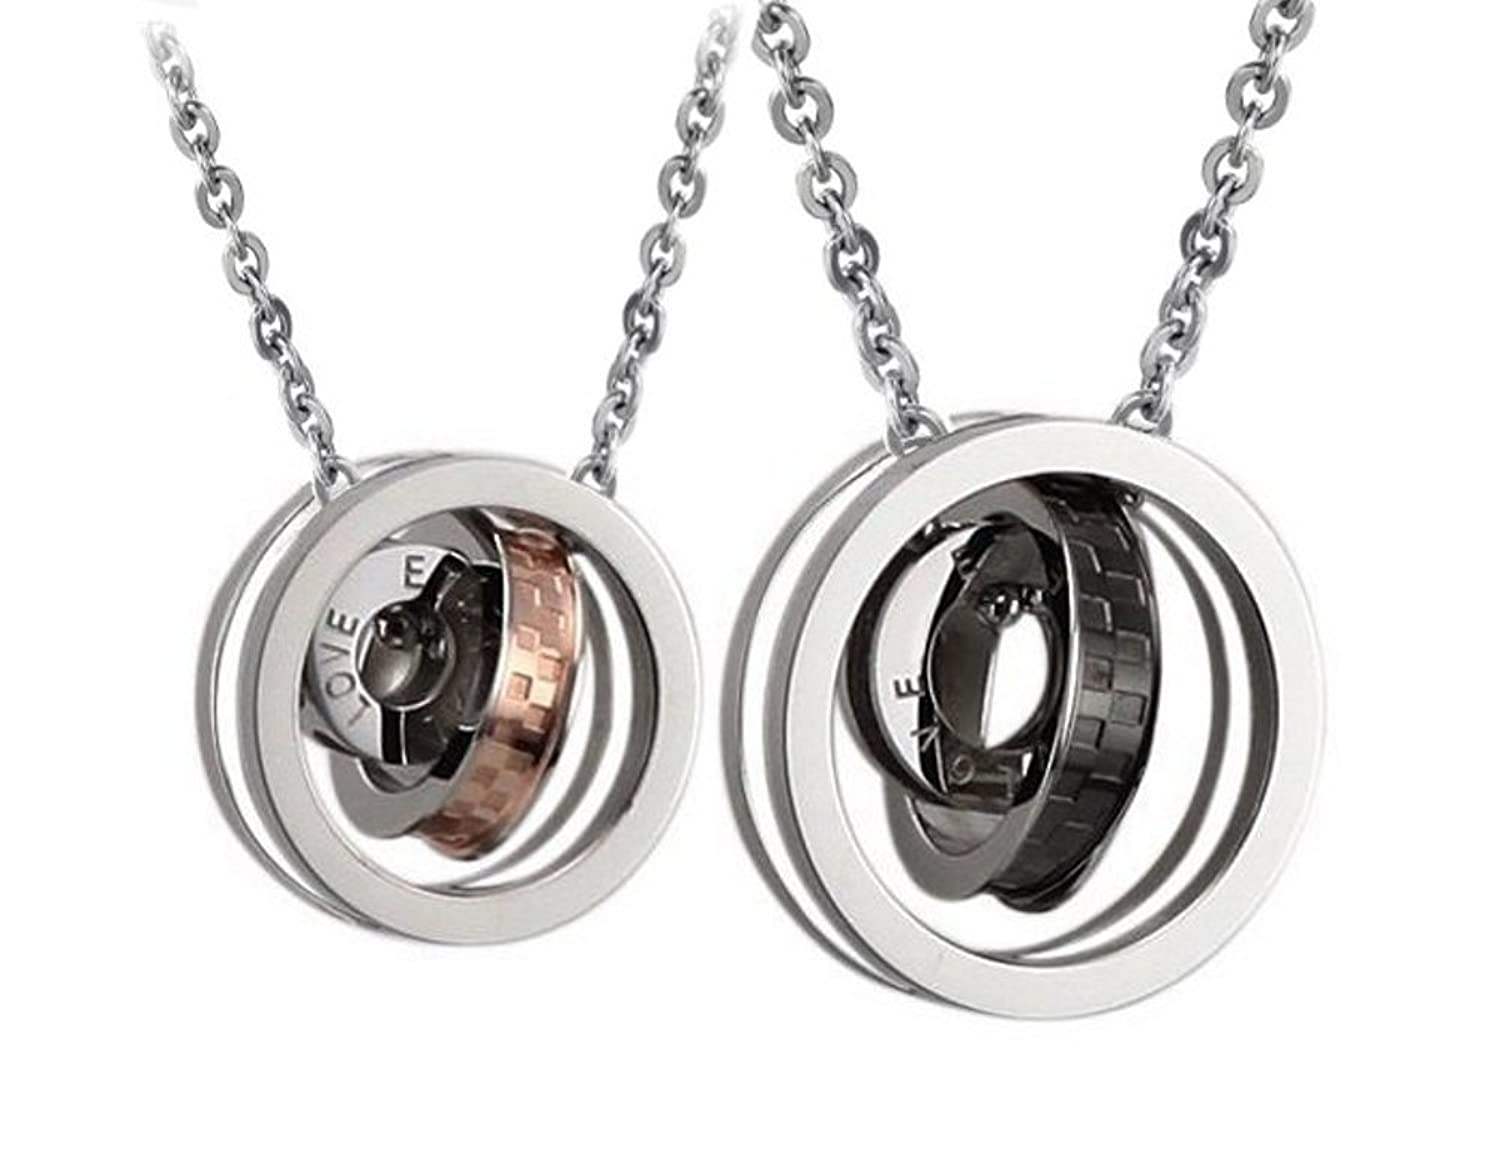 Amazon.com: His and Hers Matching Necklace Pendant Set Eternal ...